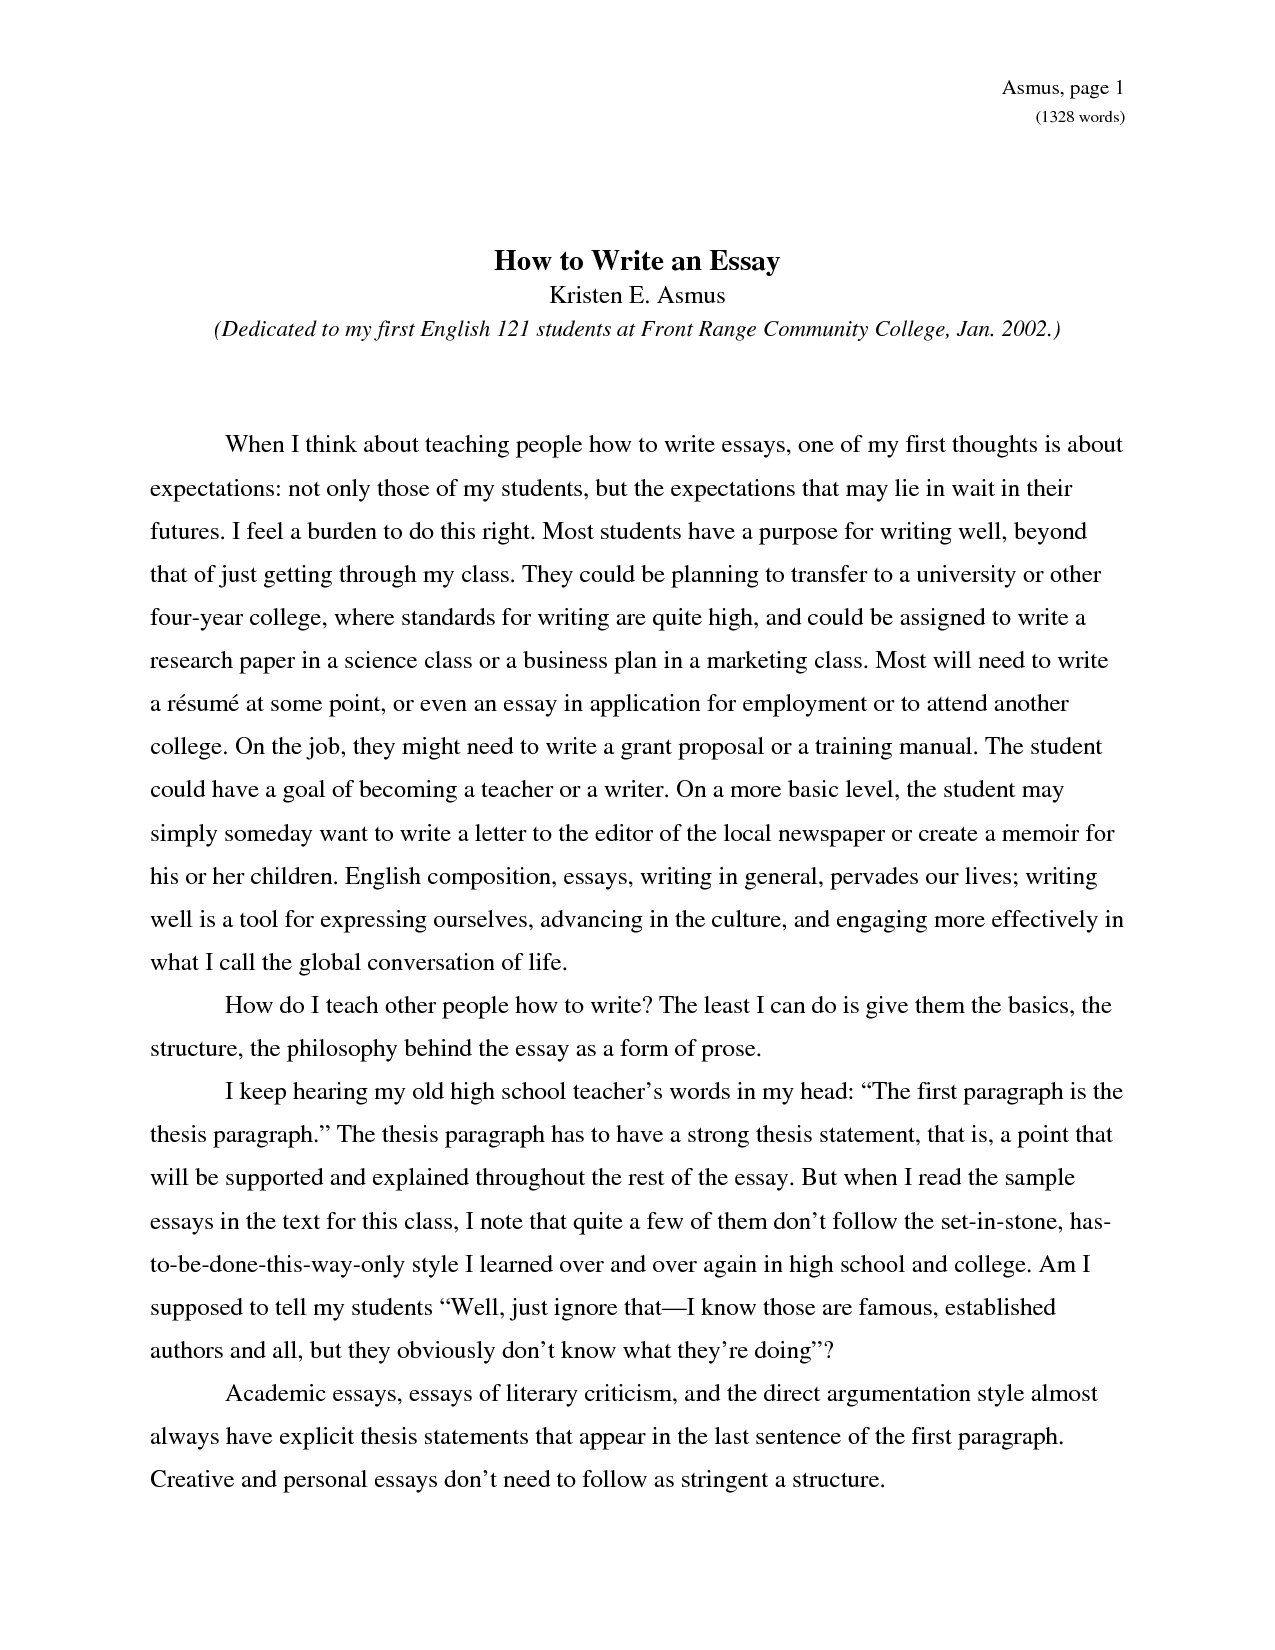 How to live a healthy life essay